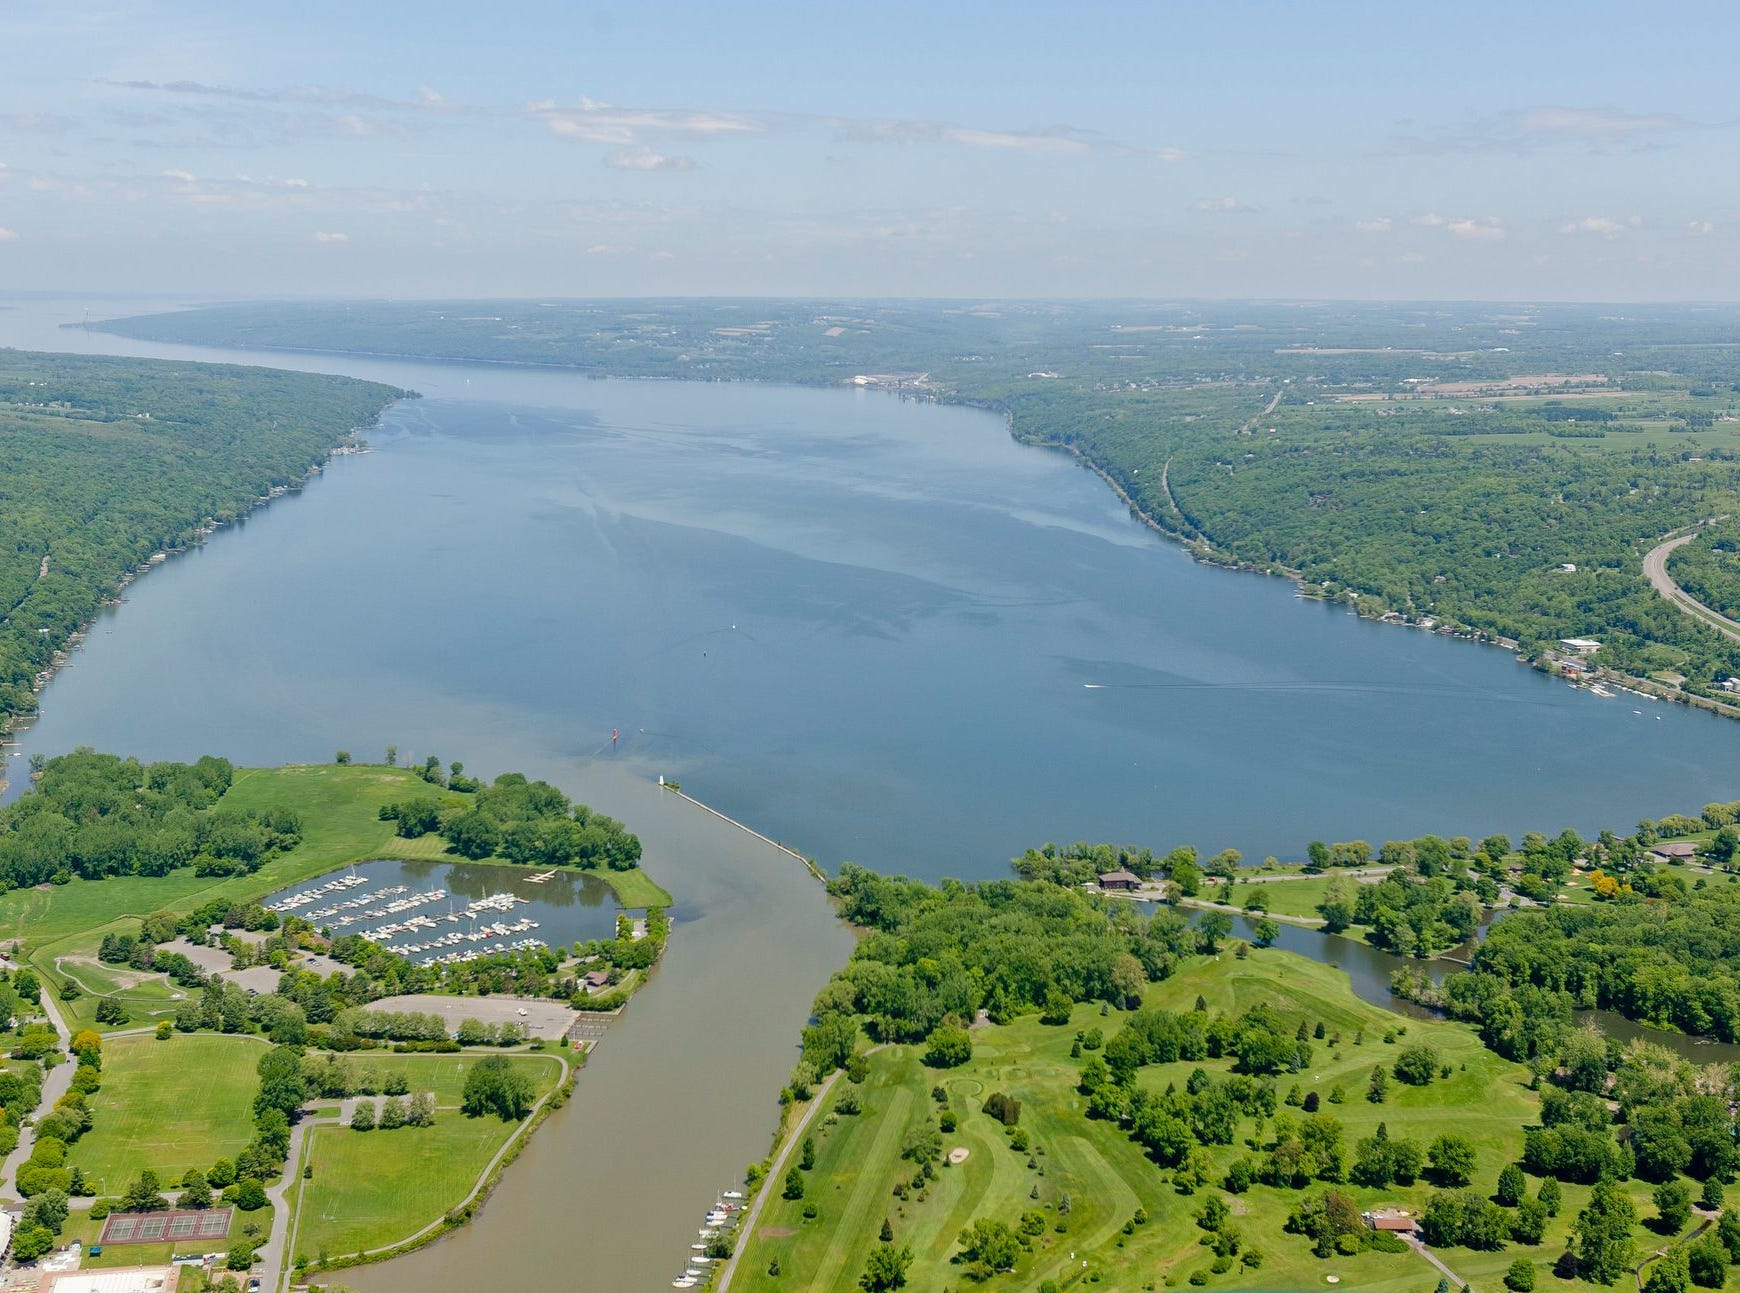 People visiting Cayuga Lake are advised to look out for peculiar blue-green spots in the water. Cayuga Lake with Cass Park, left,  Newman Golf Course, lower right, in May of 2014. Phosphorus is a concern in Cayuga Lake because it promotes algal growth, and algae has impaired southern Cayuga Lake for swimming. The impairment led Cayuga's Southern end to become listed in 2002 for violating the U.S. Clean Water Act.